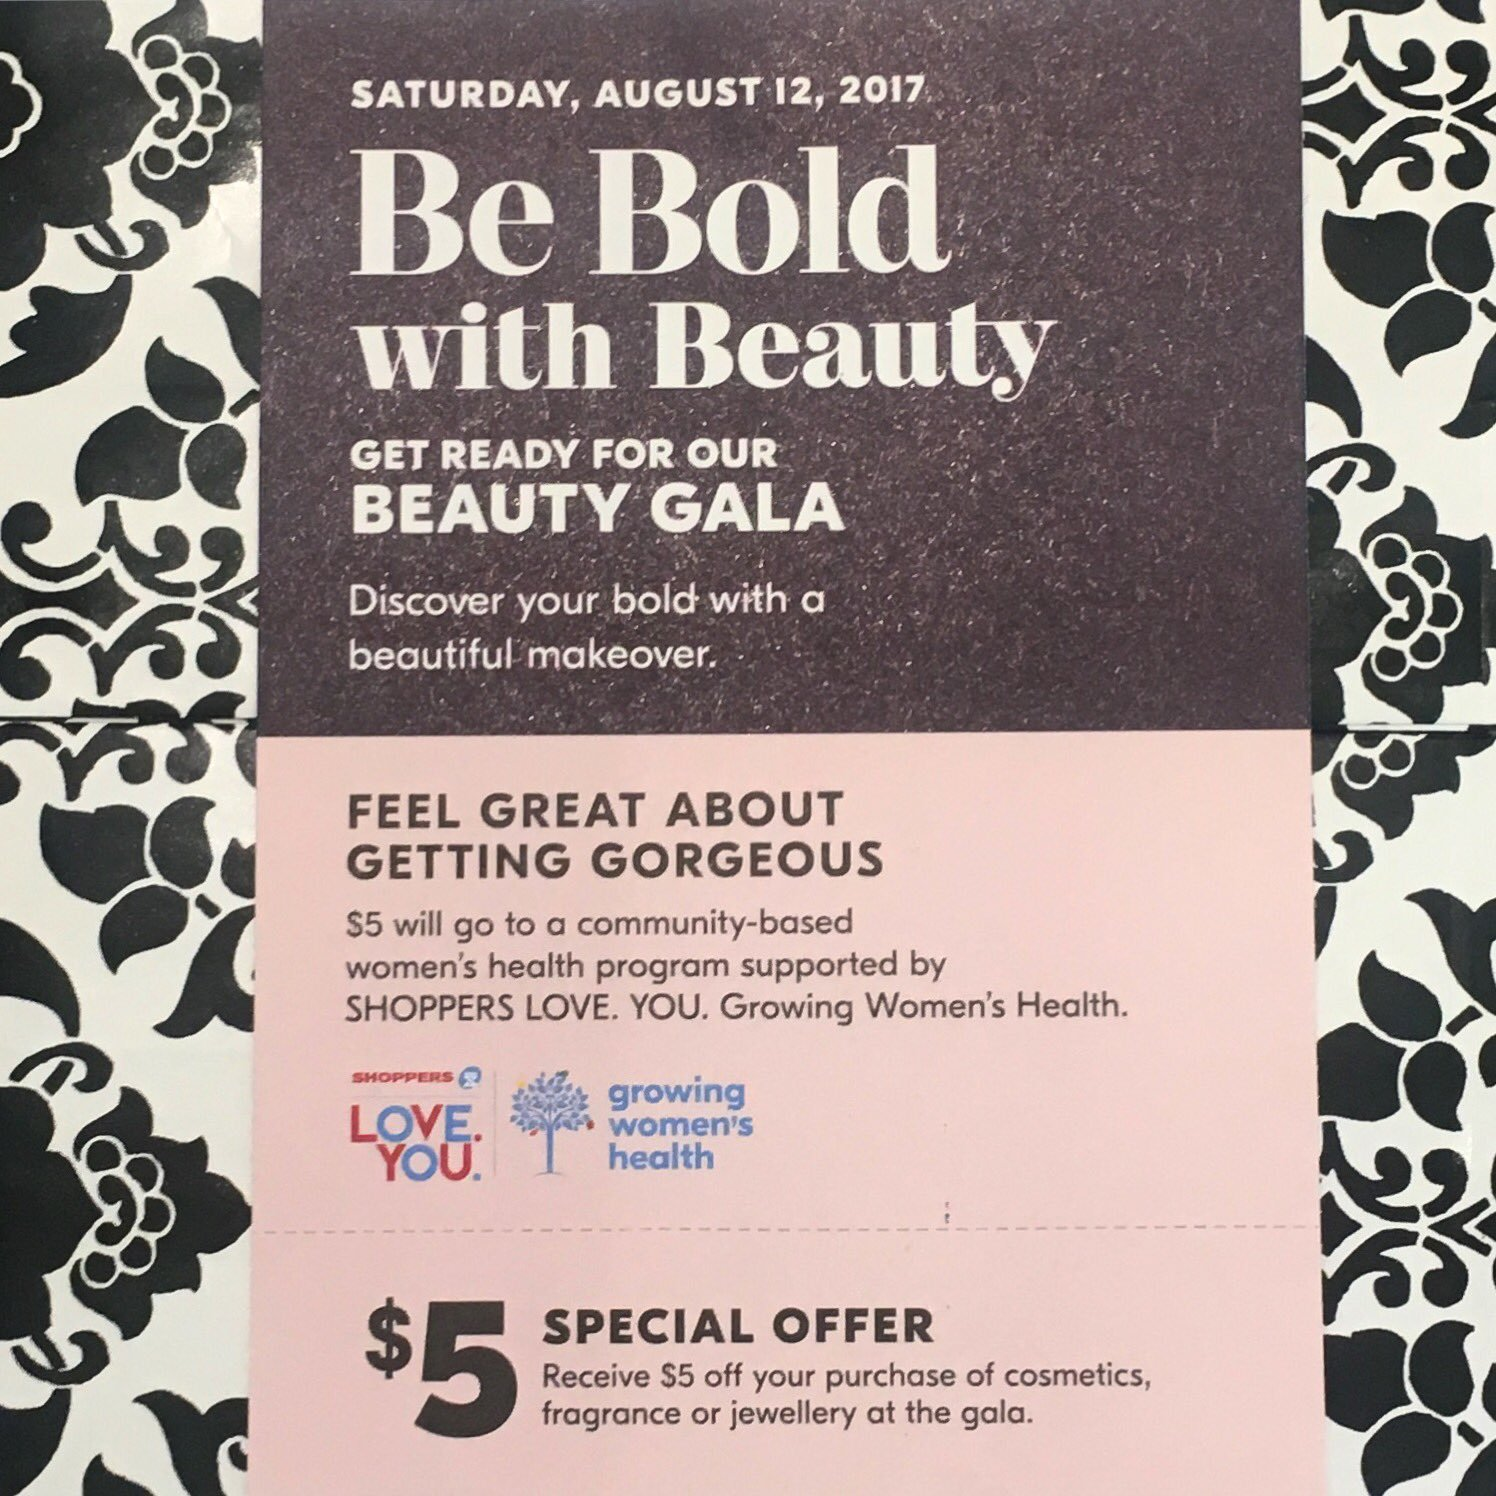 Shoppers Drug Mart 2017 Beauty Gala - August 12